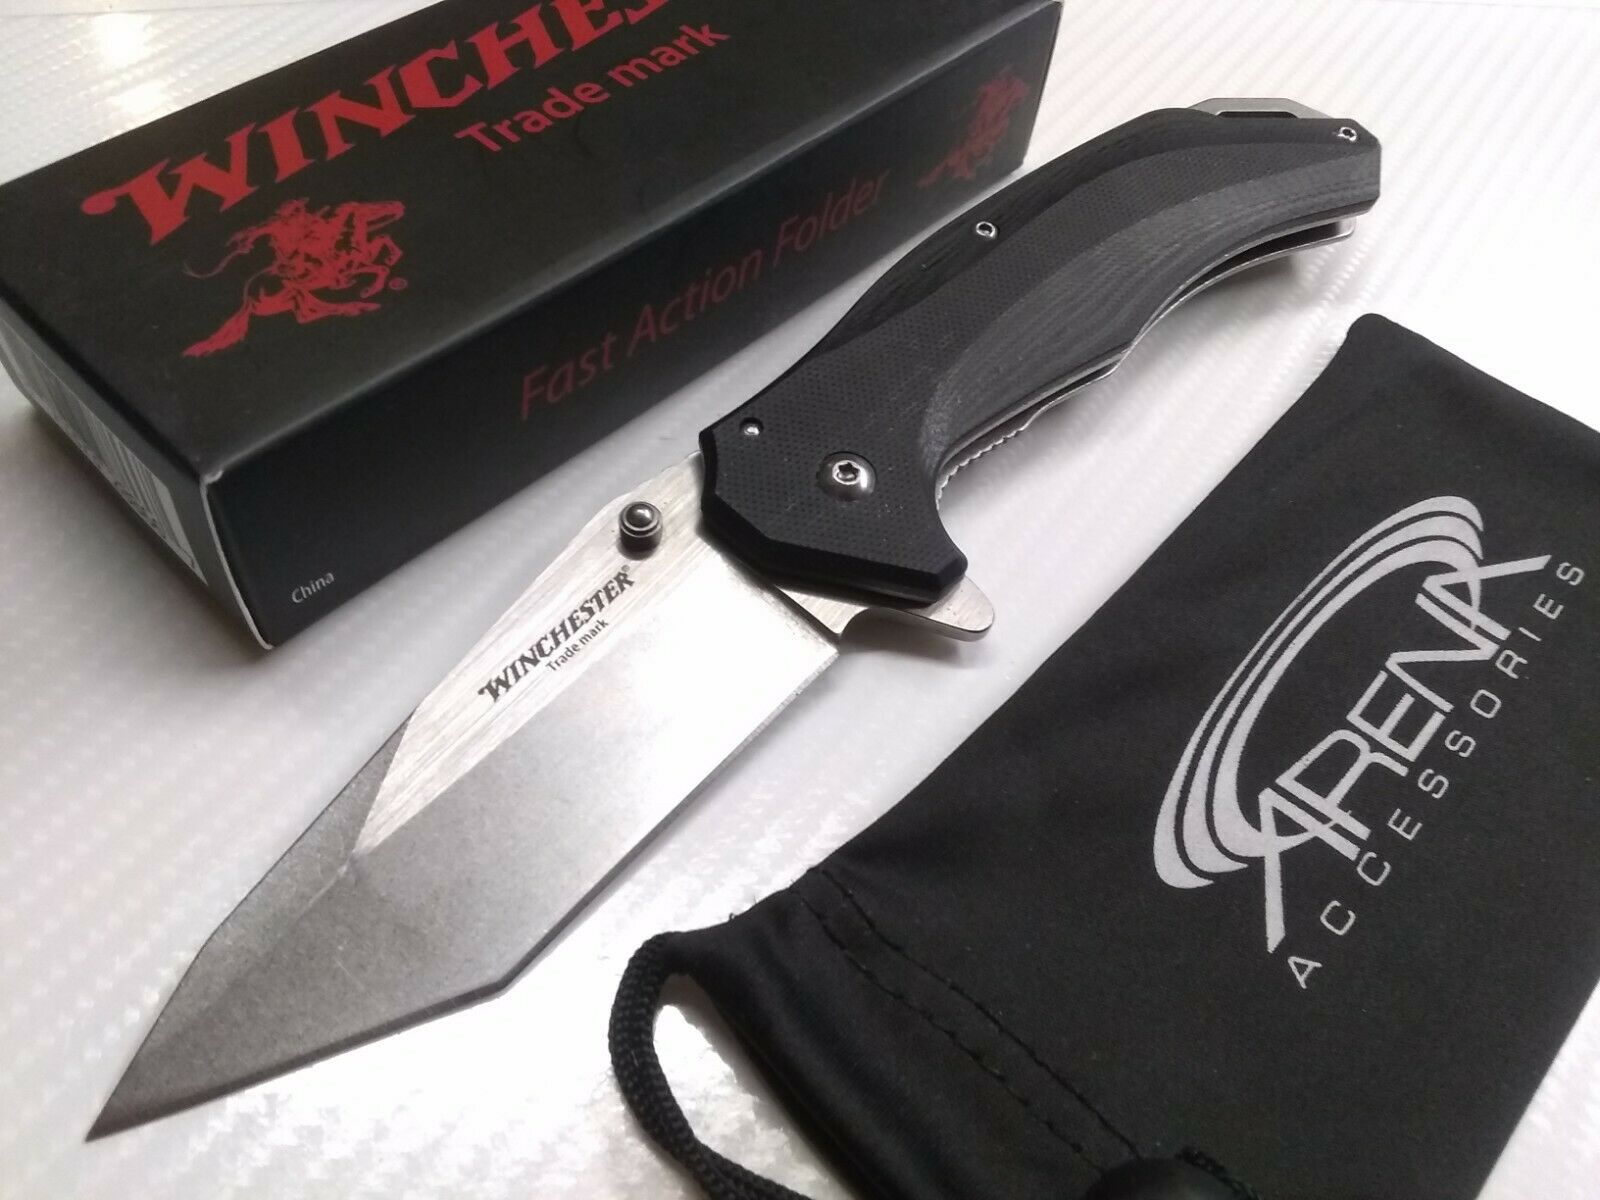 Winchester 7Cr17MoV Steel Frame Lock Tanto G10 Spring Assisted Pocket Knife Tip Up Carry EDC Clip